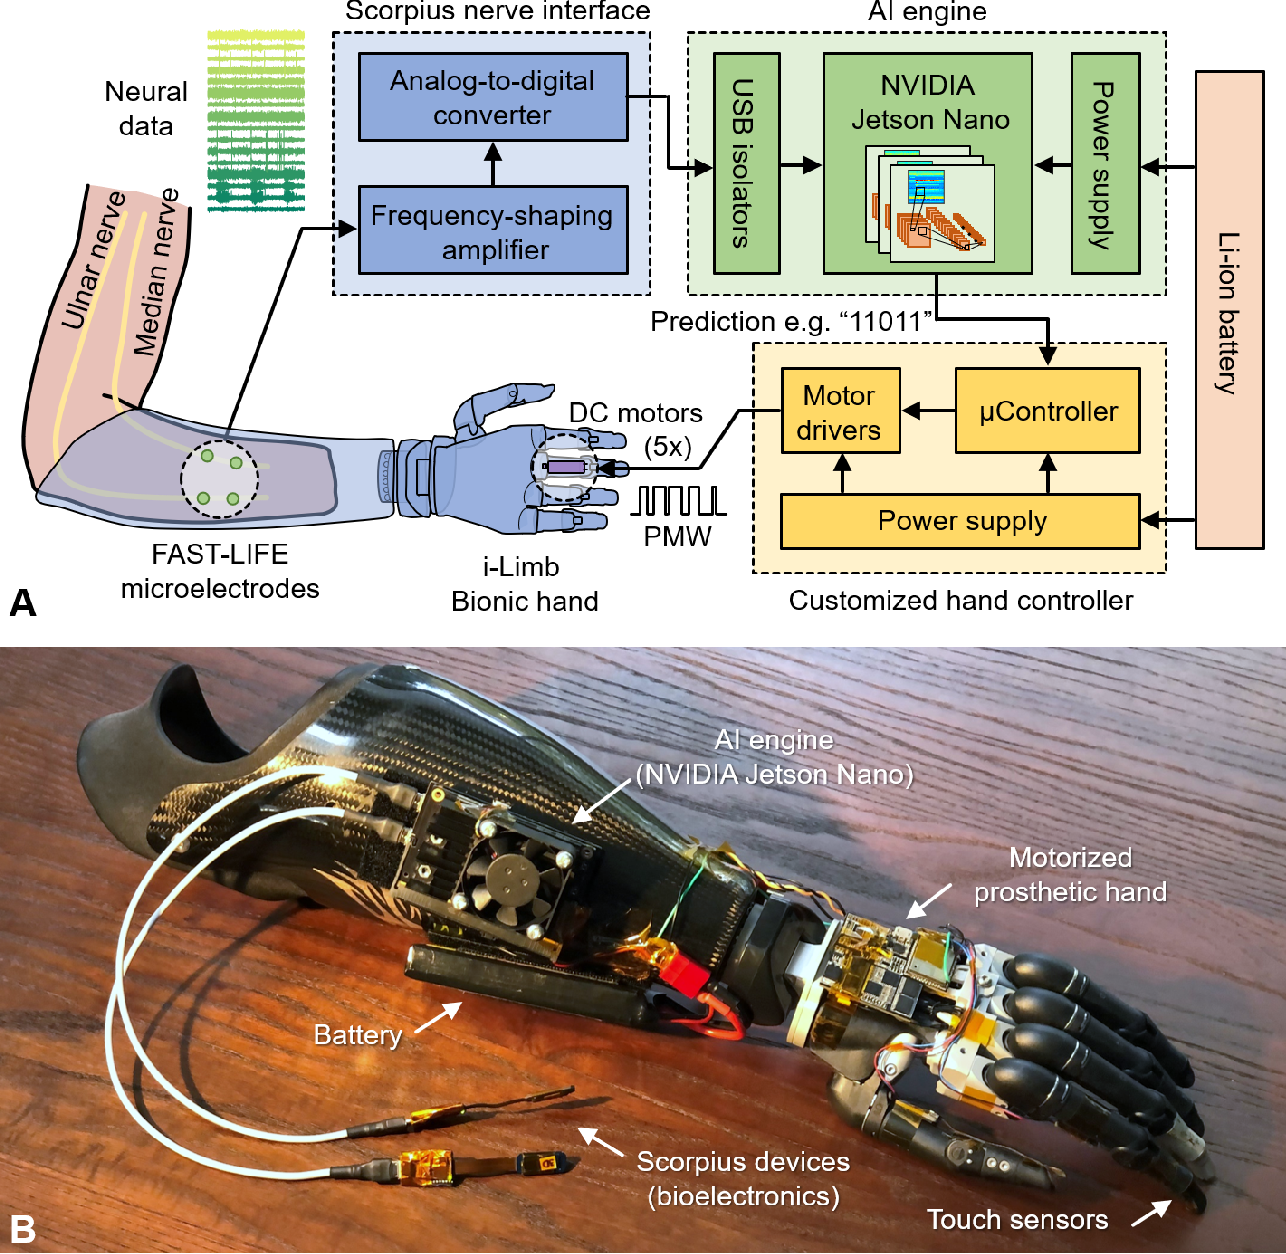 Figure 3 for A Portable, Self-Contained Neuroprosthetic Hand with Deep Learning-Based Finger Control